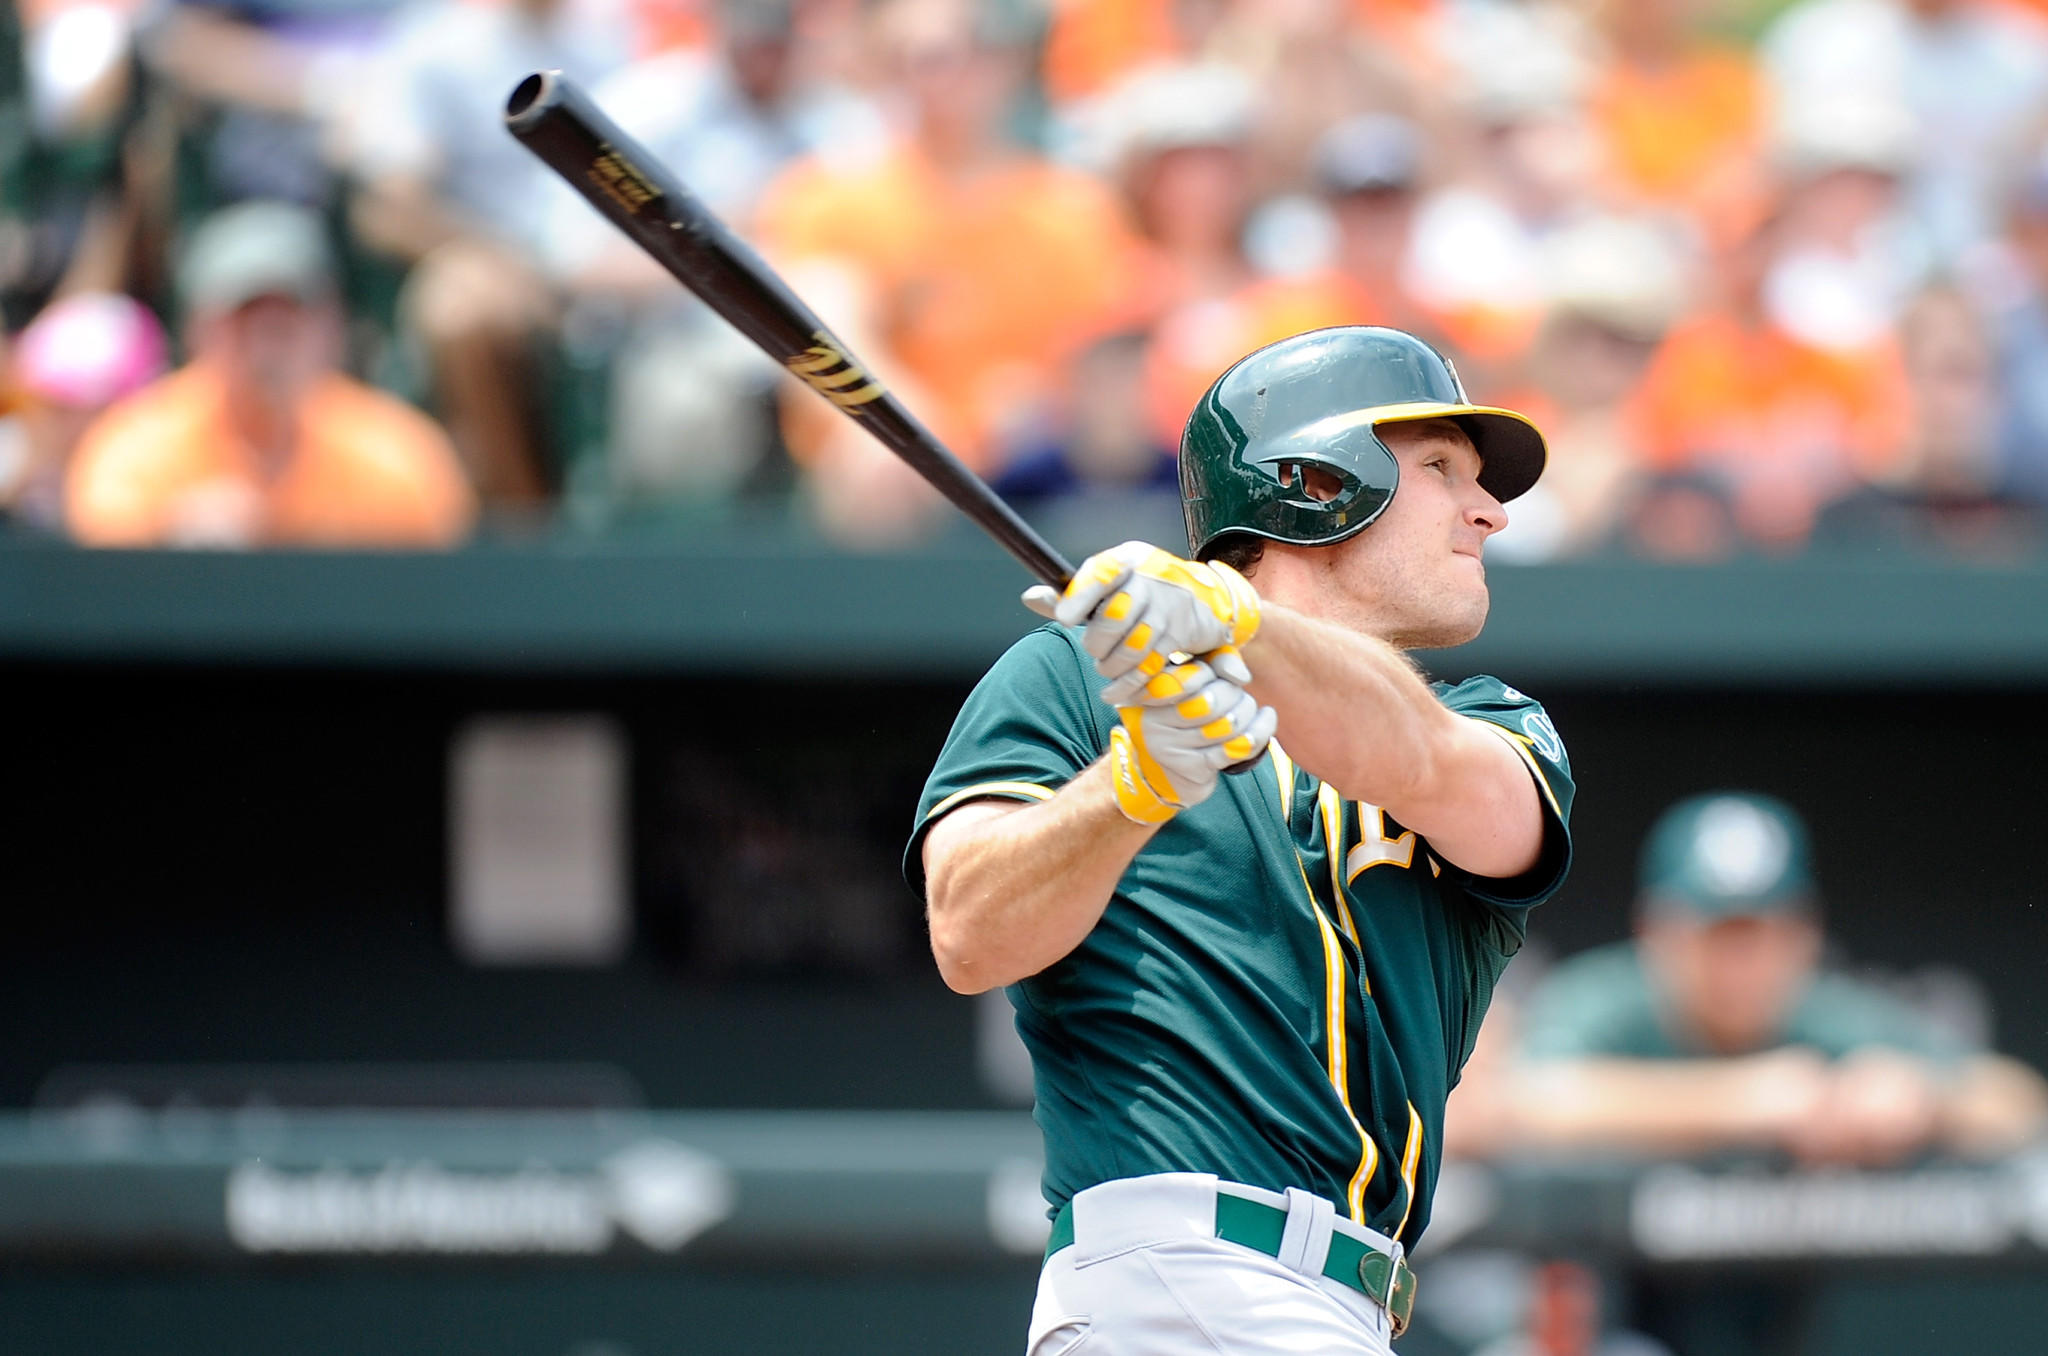 John Jaso of the Oakland Athletics hits a double in the third inning against the Baltimore Orioles at Oriole Park at Camden Yards on June 8, 2014.